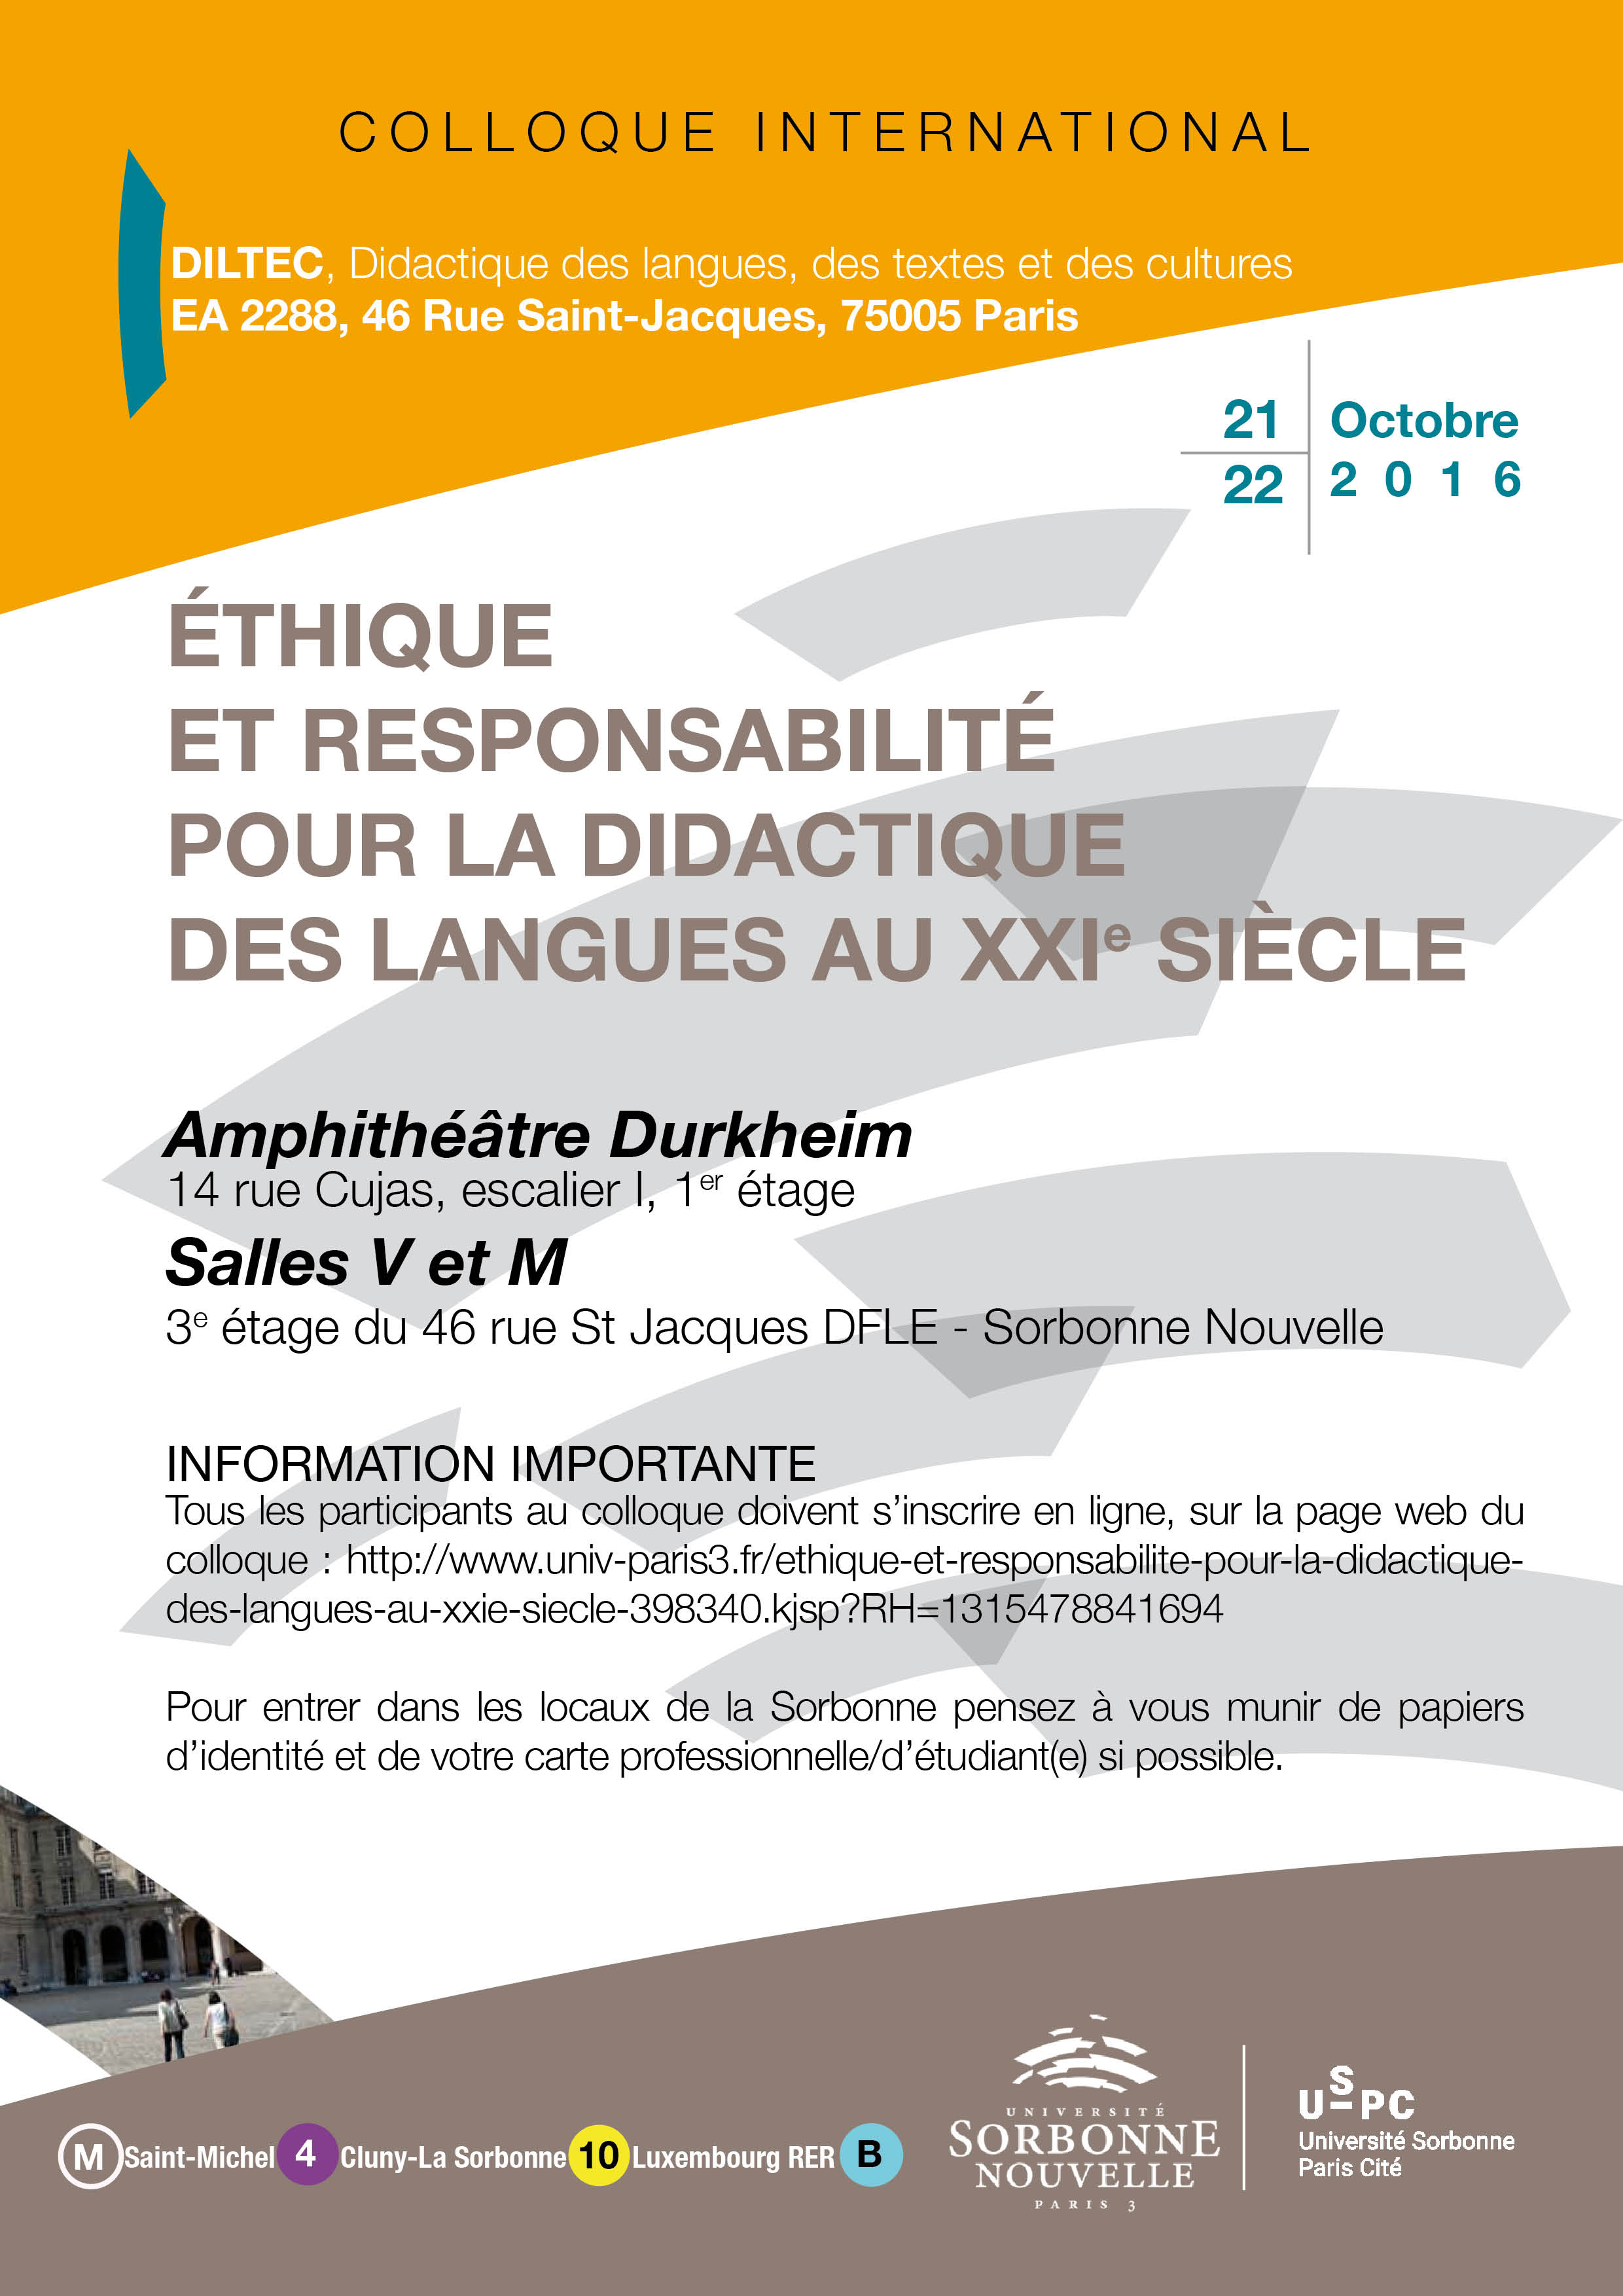 affiche_colloque_Diltec_ethique_version_finale_30_09_2016.jpg